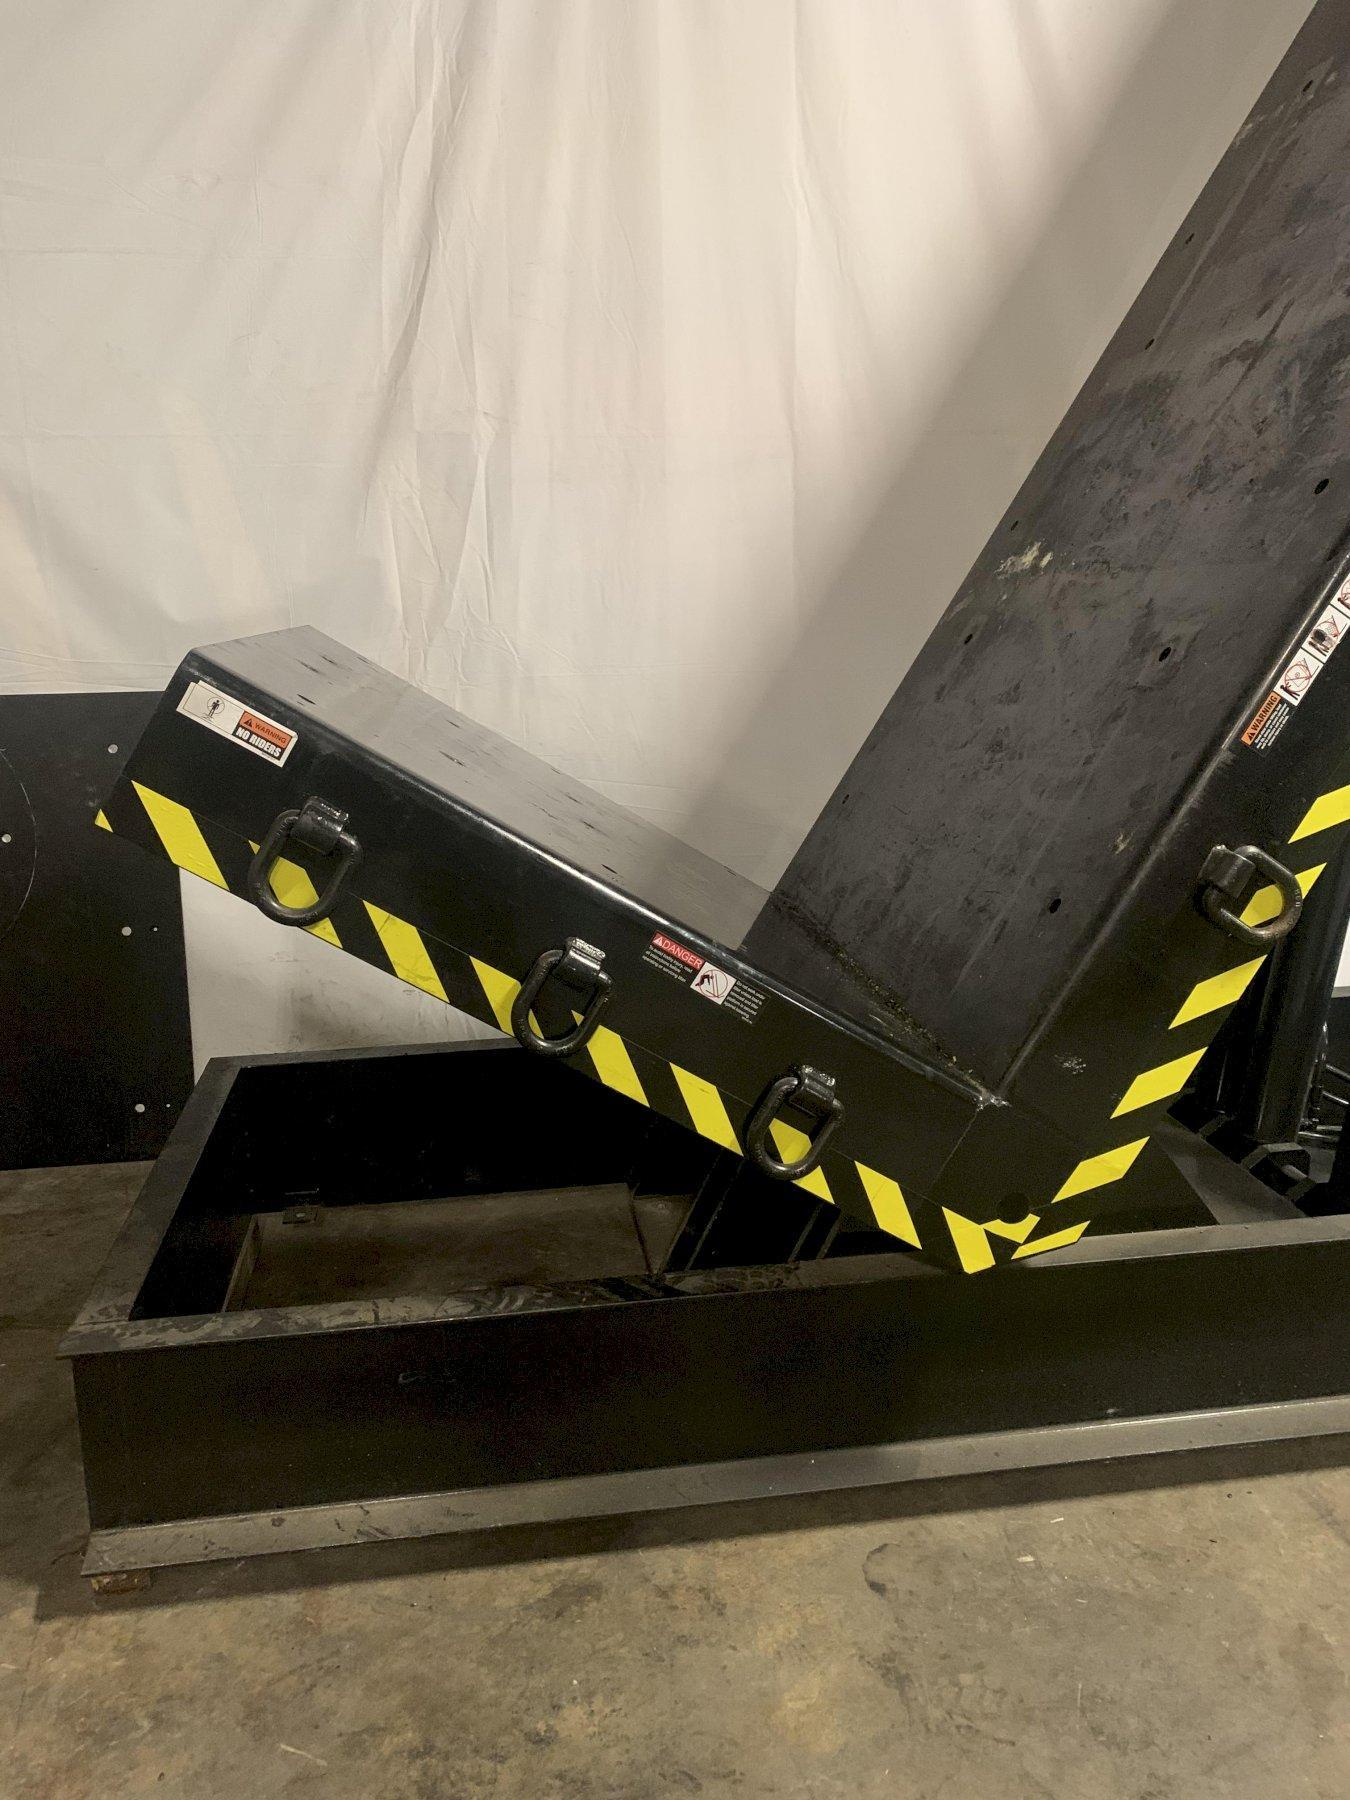 40,000 LBS AUTOQUIP MODEL FF HYDRAULIC TILTING UPENDER: STOCK #12176